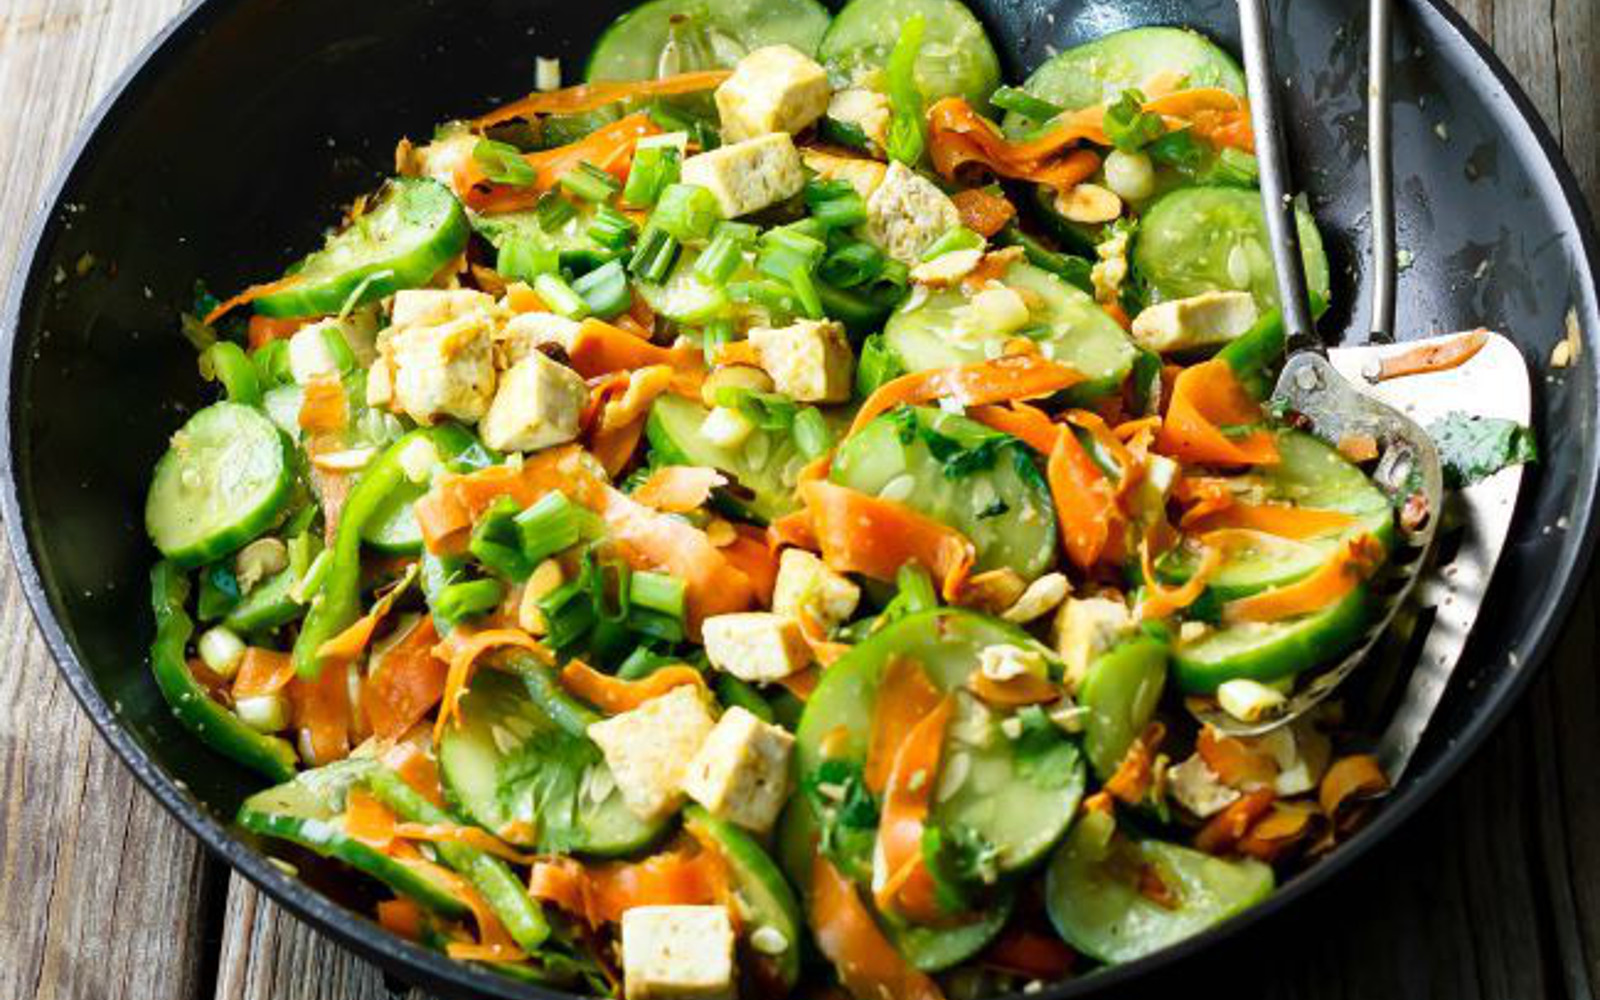 Spicy Cucumber Salad With Pan-Fried Tofu 1.jpg